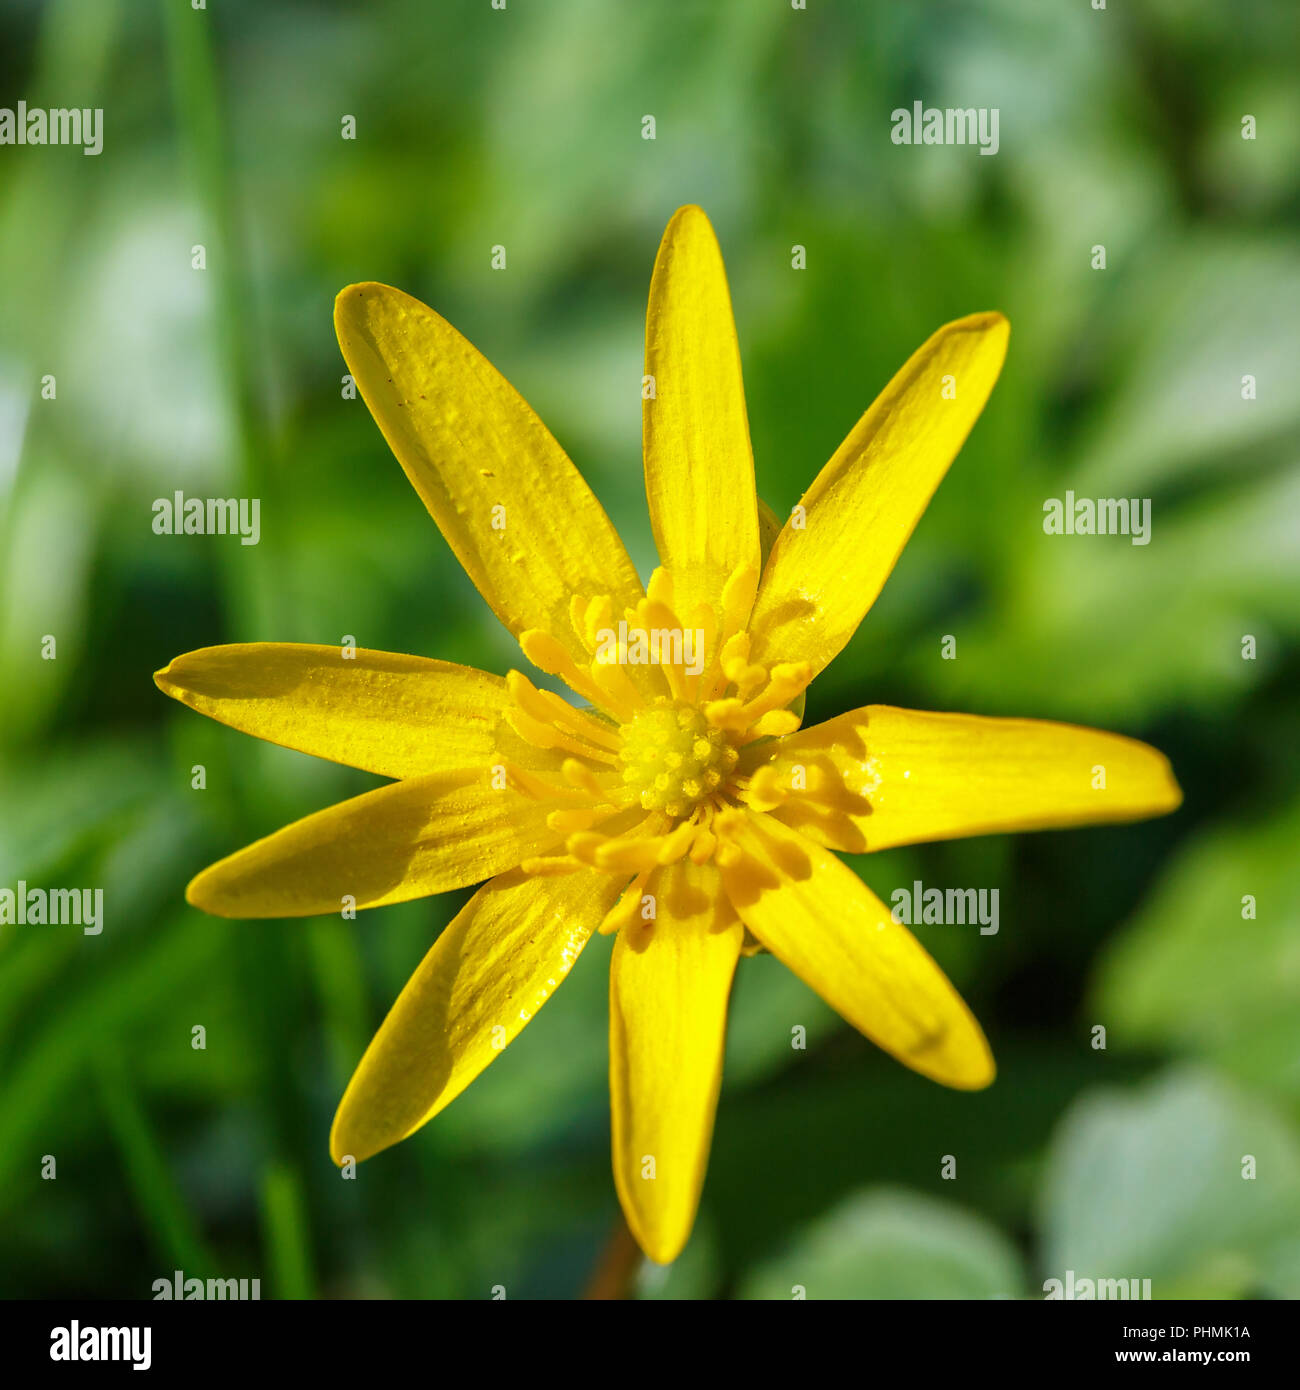 Close up at a Pilewort early spring flower - Stock Image